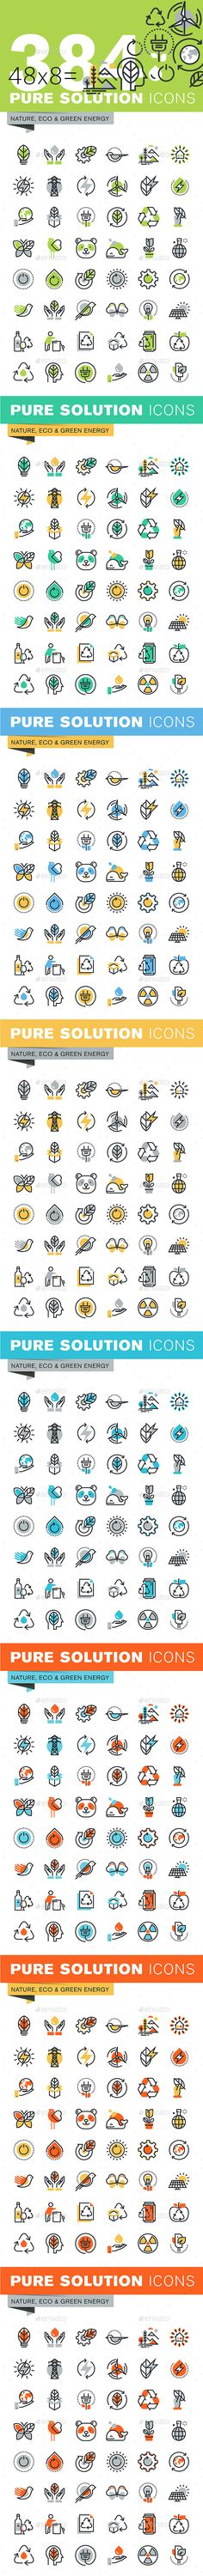 Set of Thin Line Flat Design Icons of Environment and Green Technology. Download here: http://graphicriver.net/item/set-of-thin-line-flat-design-icons-of-environment-and-green-technology/14788366?ref=ksioks